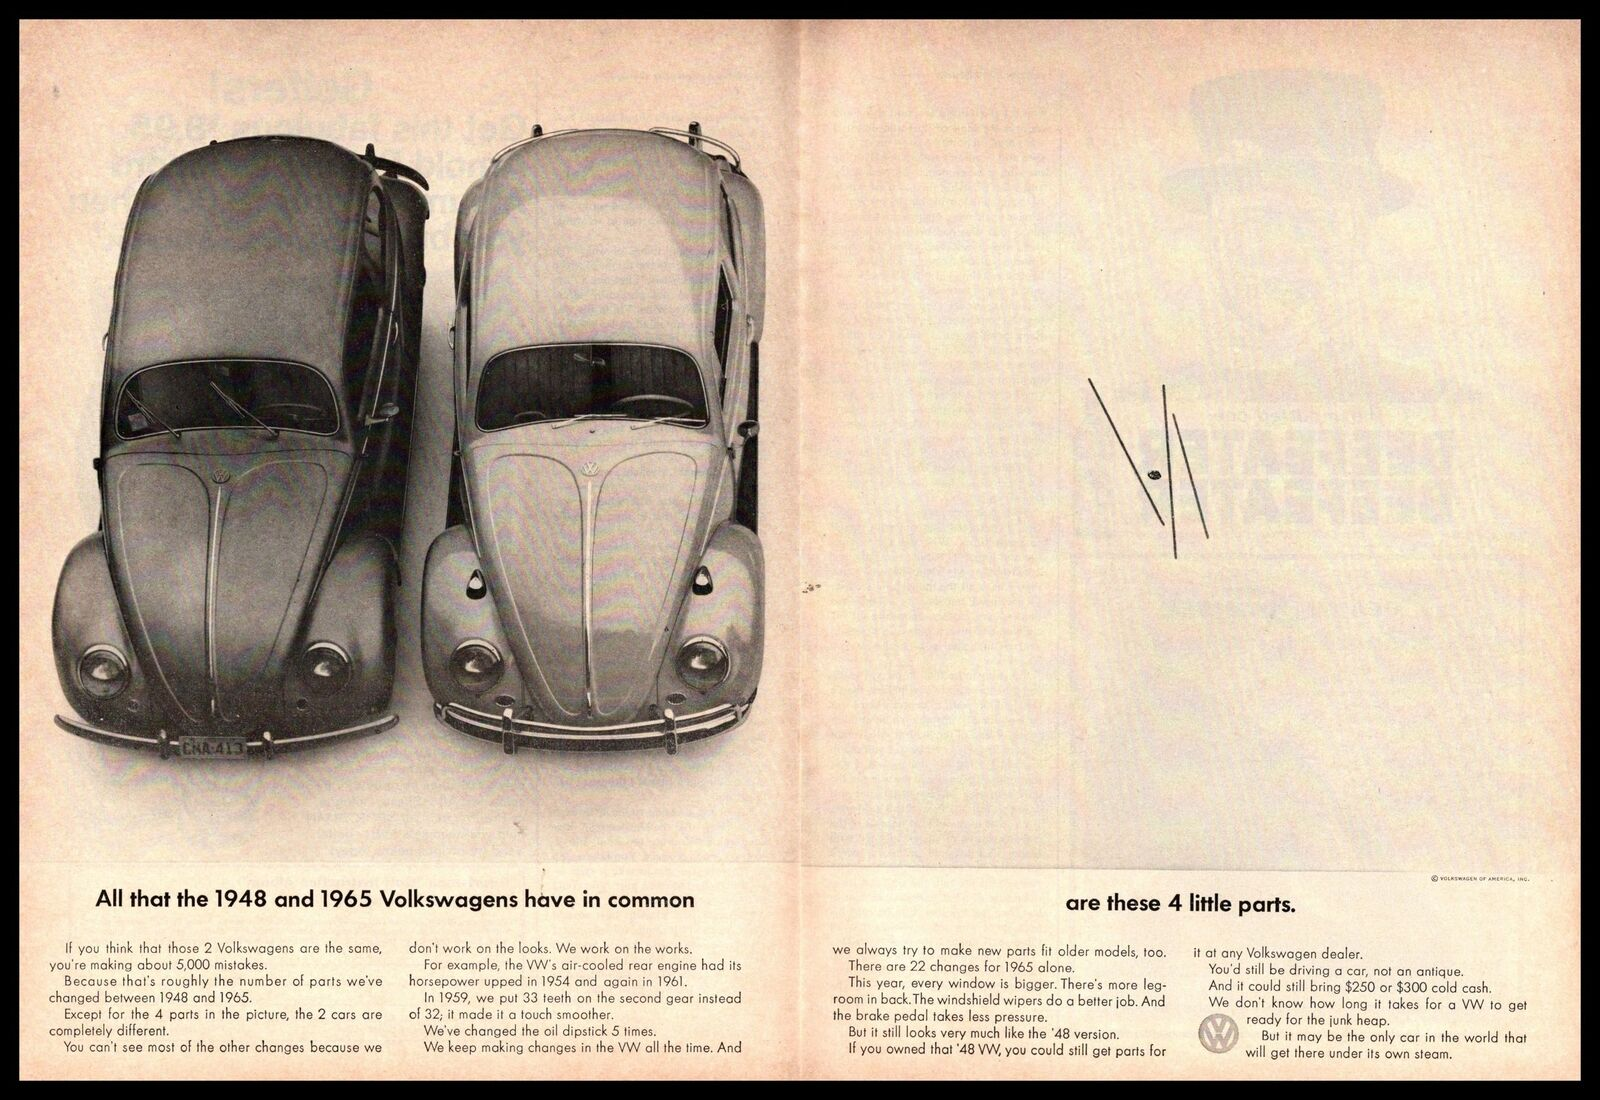 1965 VW Type 1 Beetle And 1948 VW Bug 4 LIttle Parts